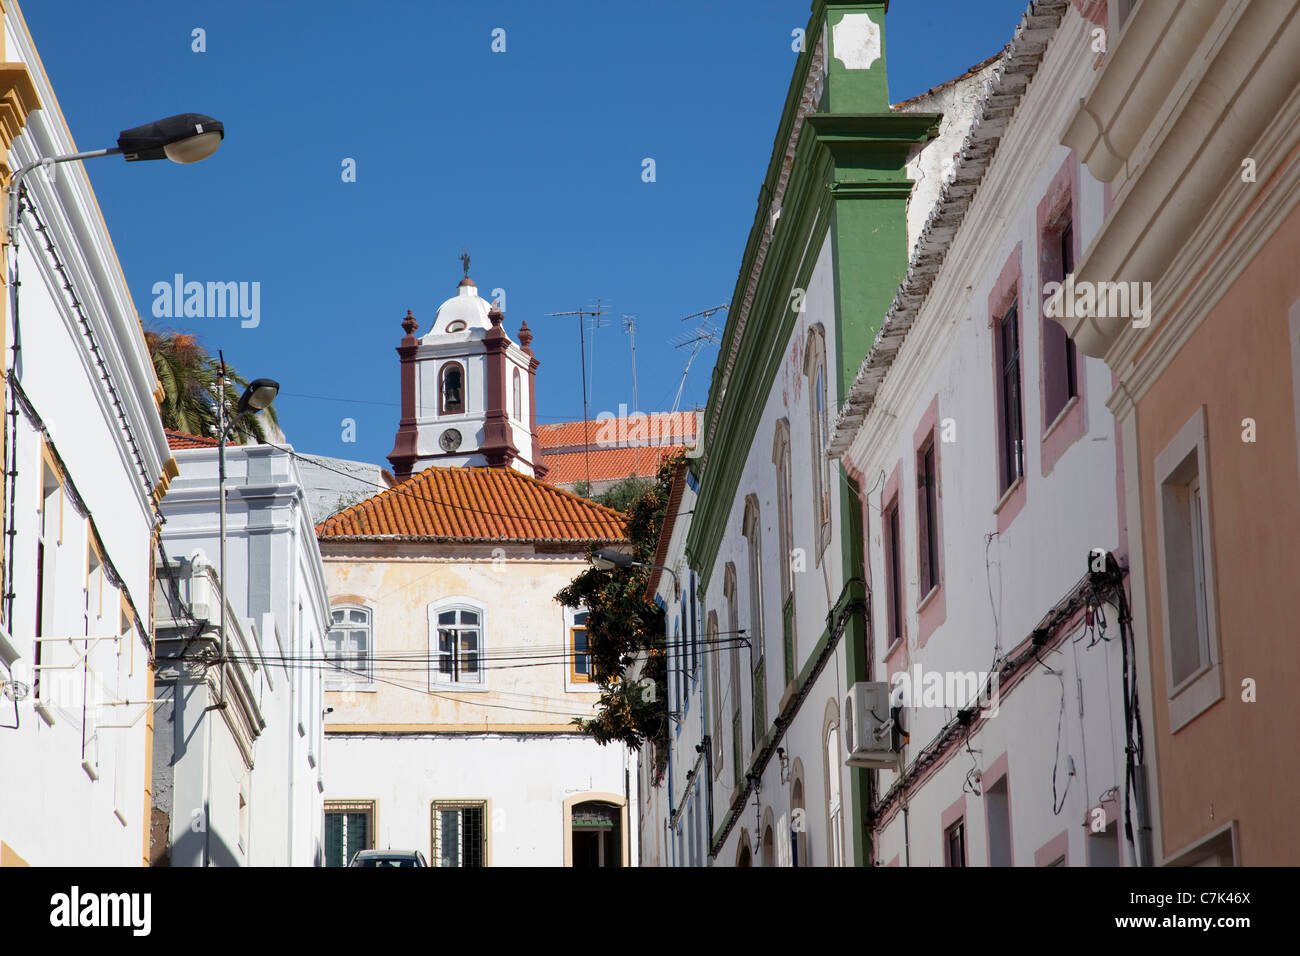 Portugal, Algarve, Silves, Cathedral & Street - Stock Image